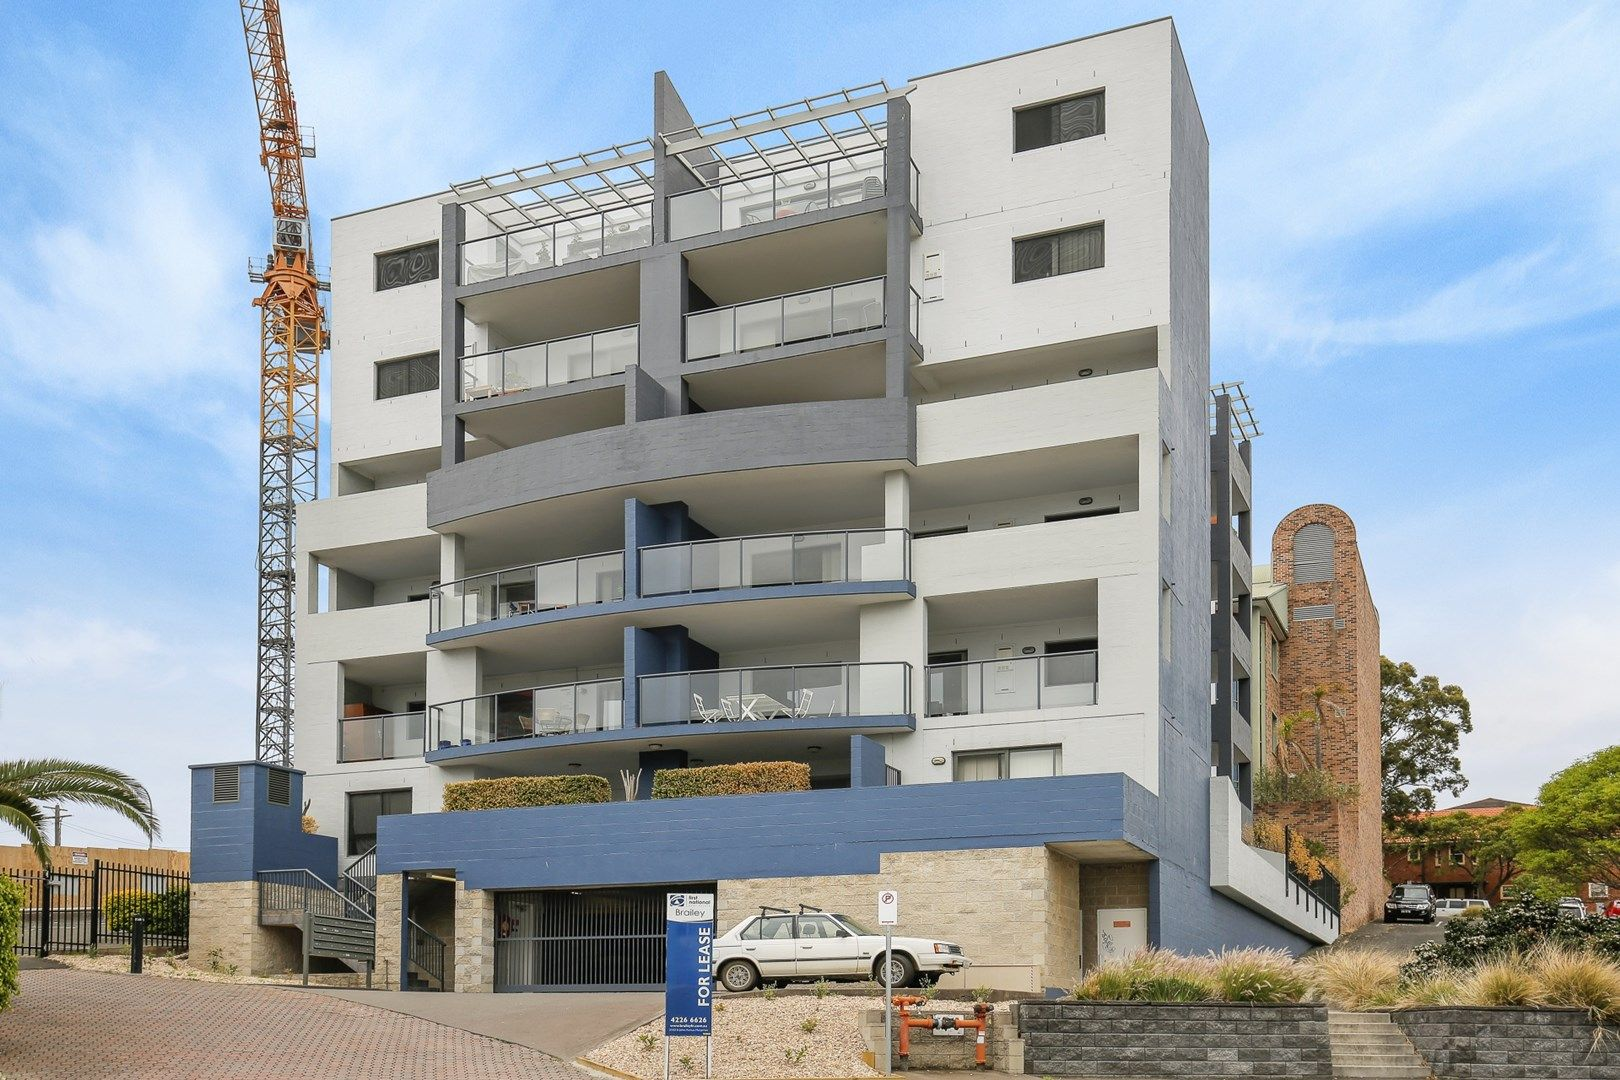 3/1 Governors Lane, Wollongong NSW 2500, Image 0